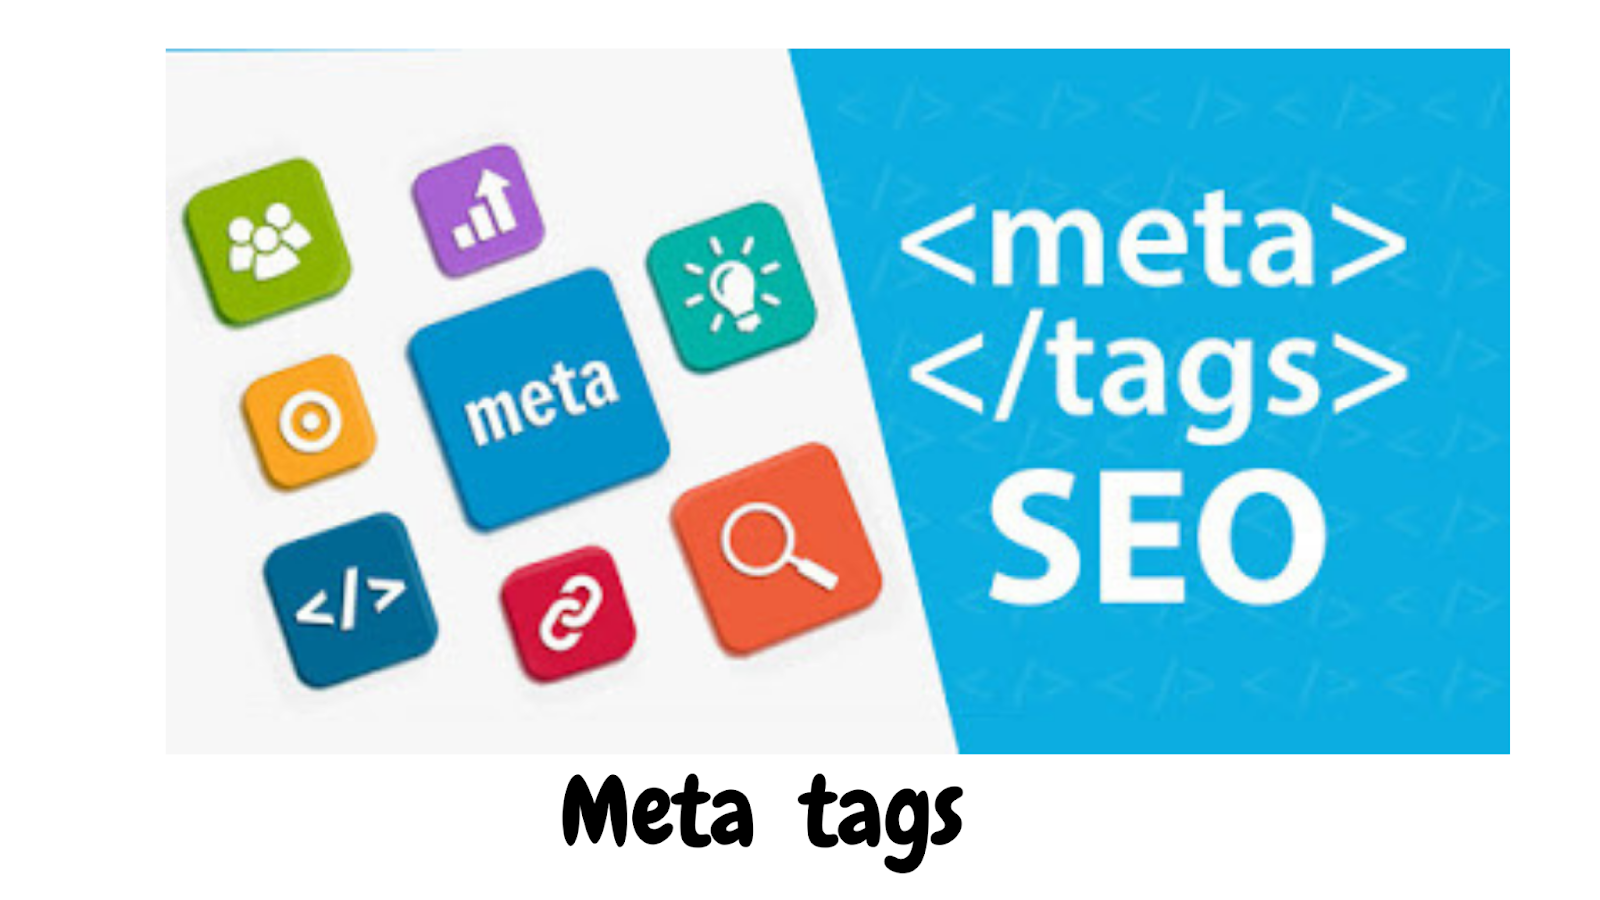 mete tags seo | Blogger SEO in english | what is seo, how to do | Blogger SEO Settings